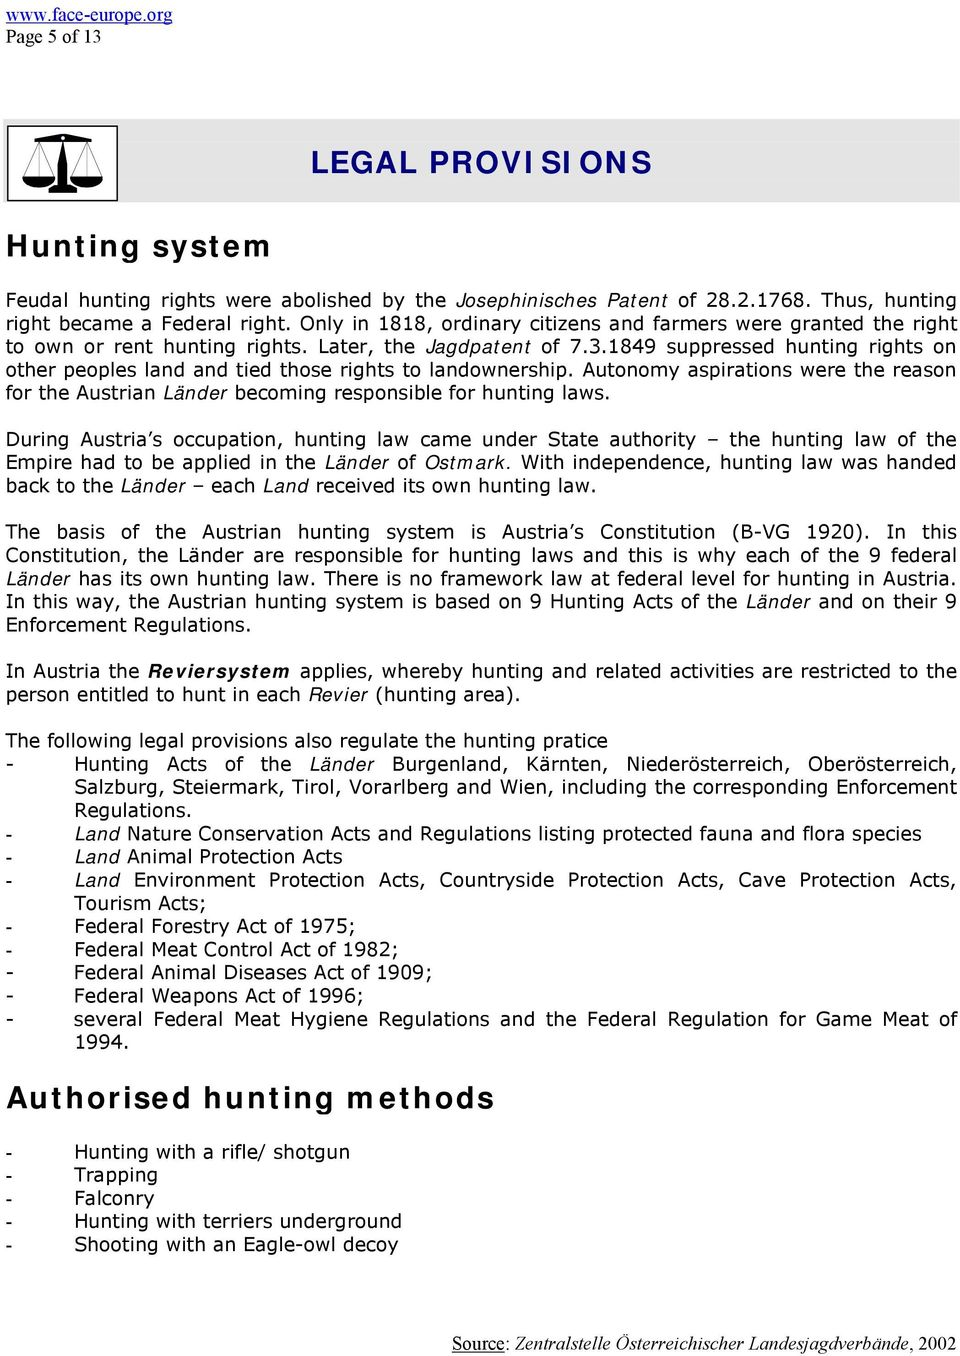 1849 suppressed hunting rights on other peoples land and tied those rights to landownership. Autonomy aspirations were the reason for the Austrian Länder becoming responsible for hunting laws.